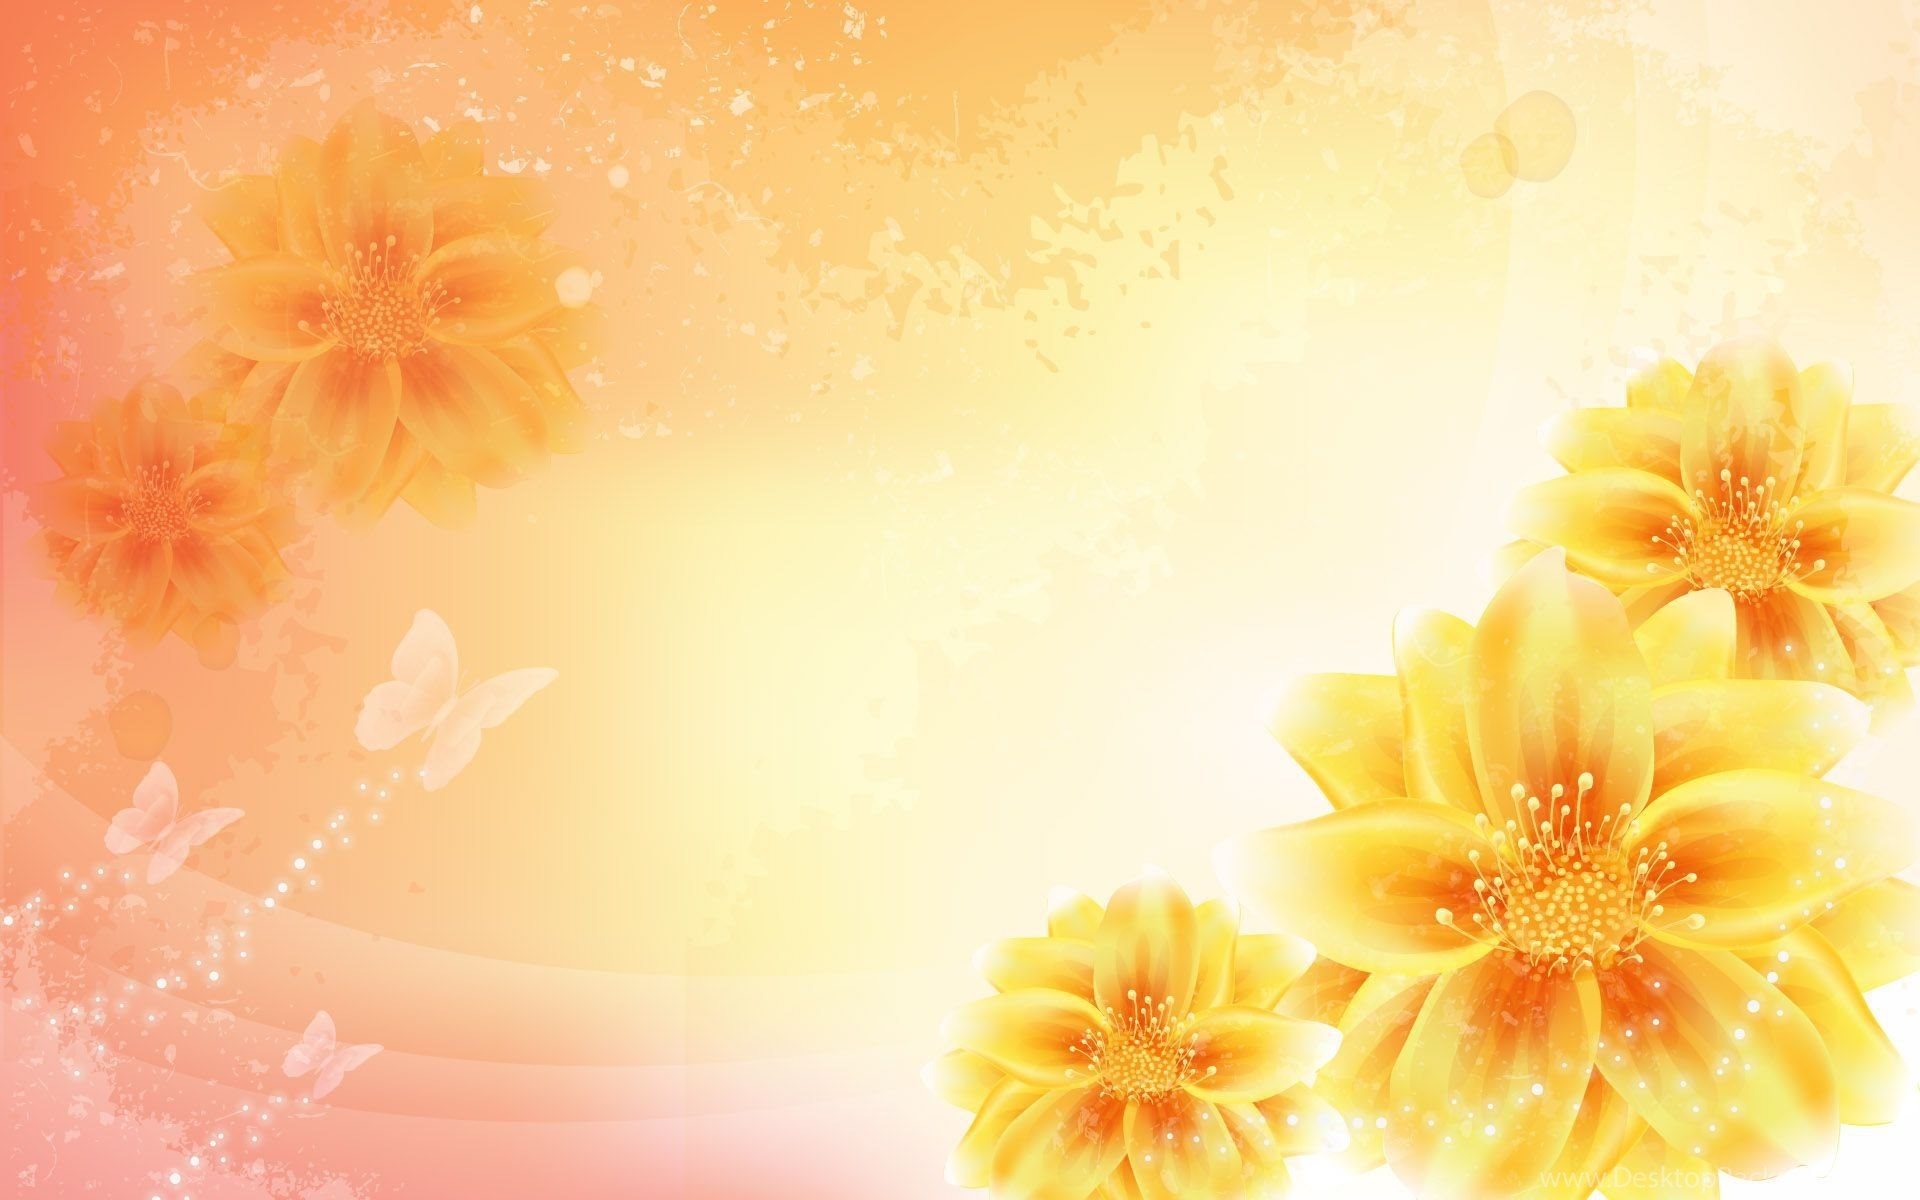 The Gallery For Yellow Flower Backgrounds Desktop Background